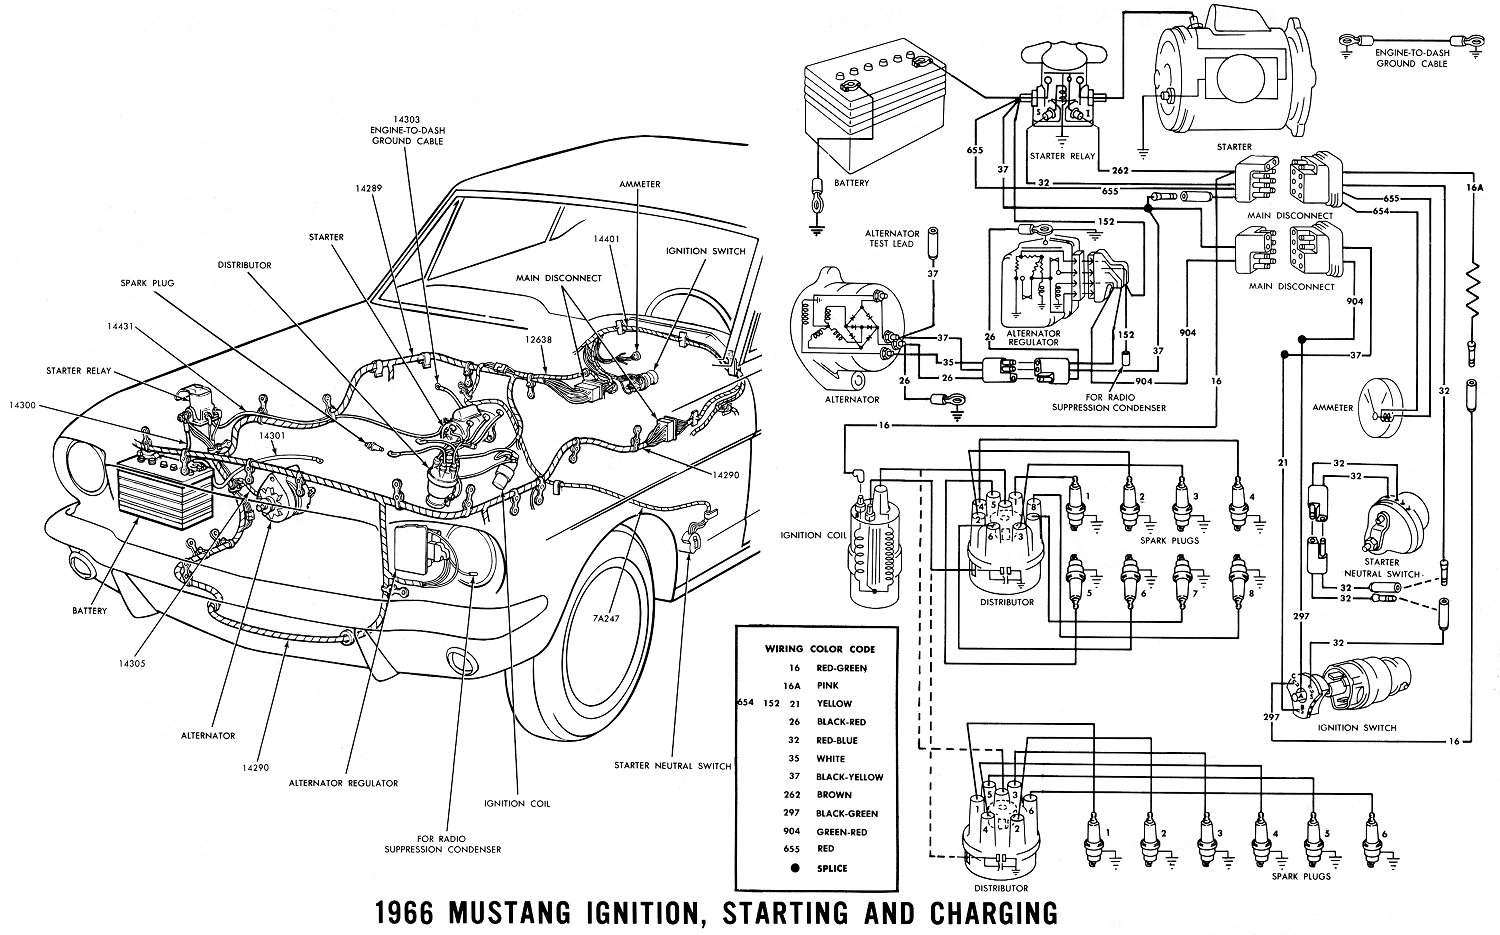 66ignit 1966 mustang wiring diagrams average joe restoration ford mustang wiring diagram at arjmand.co